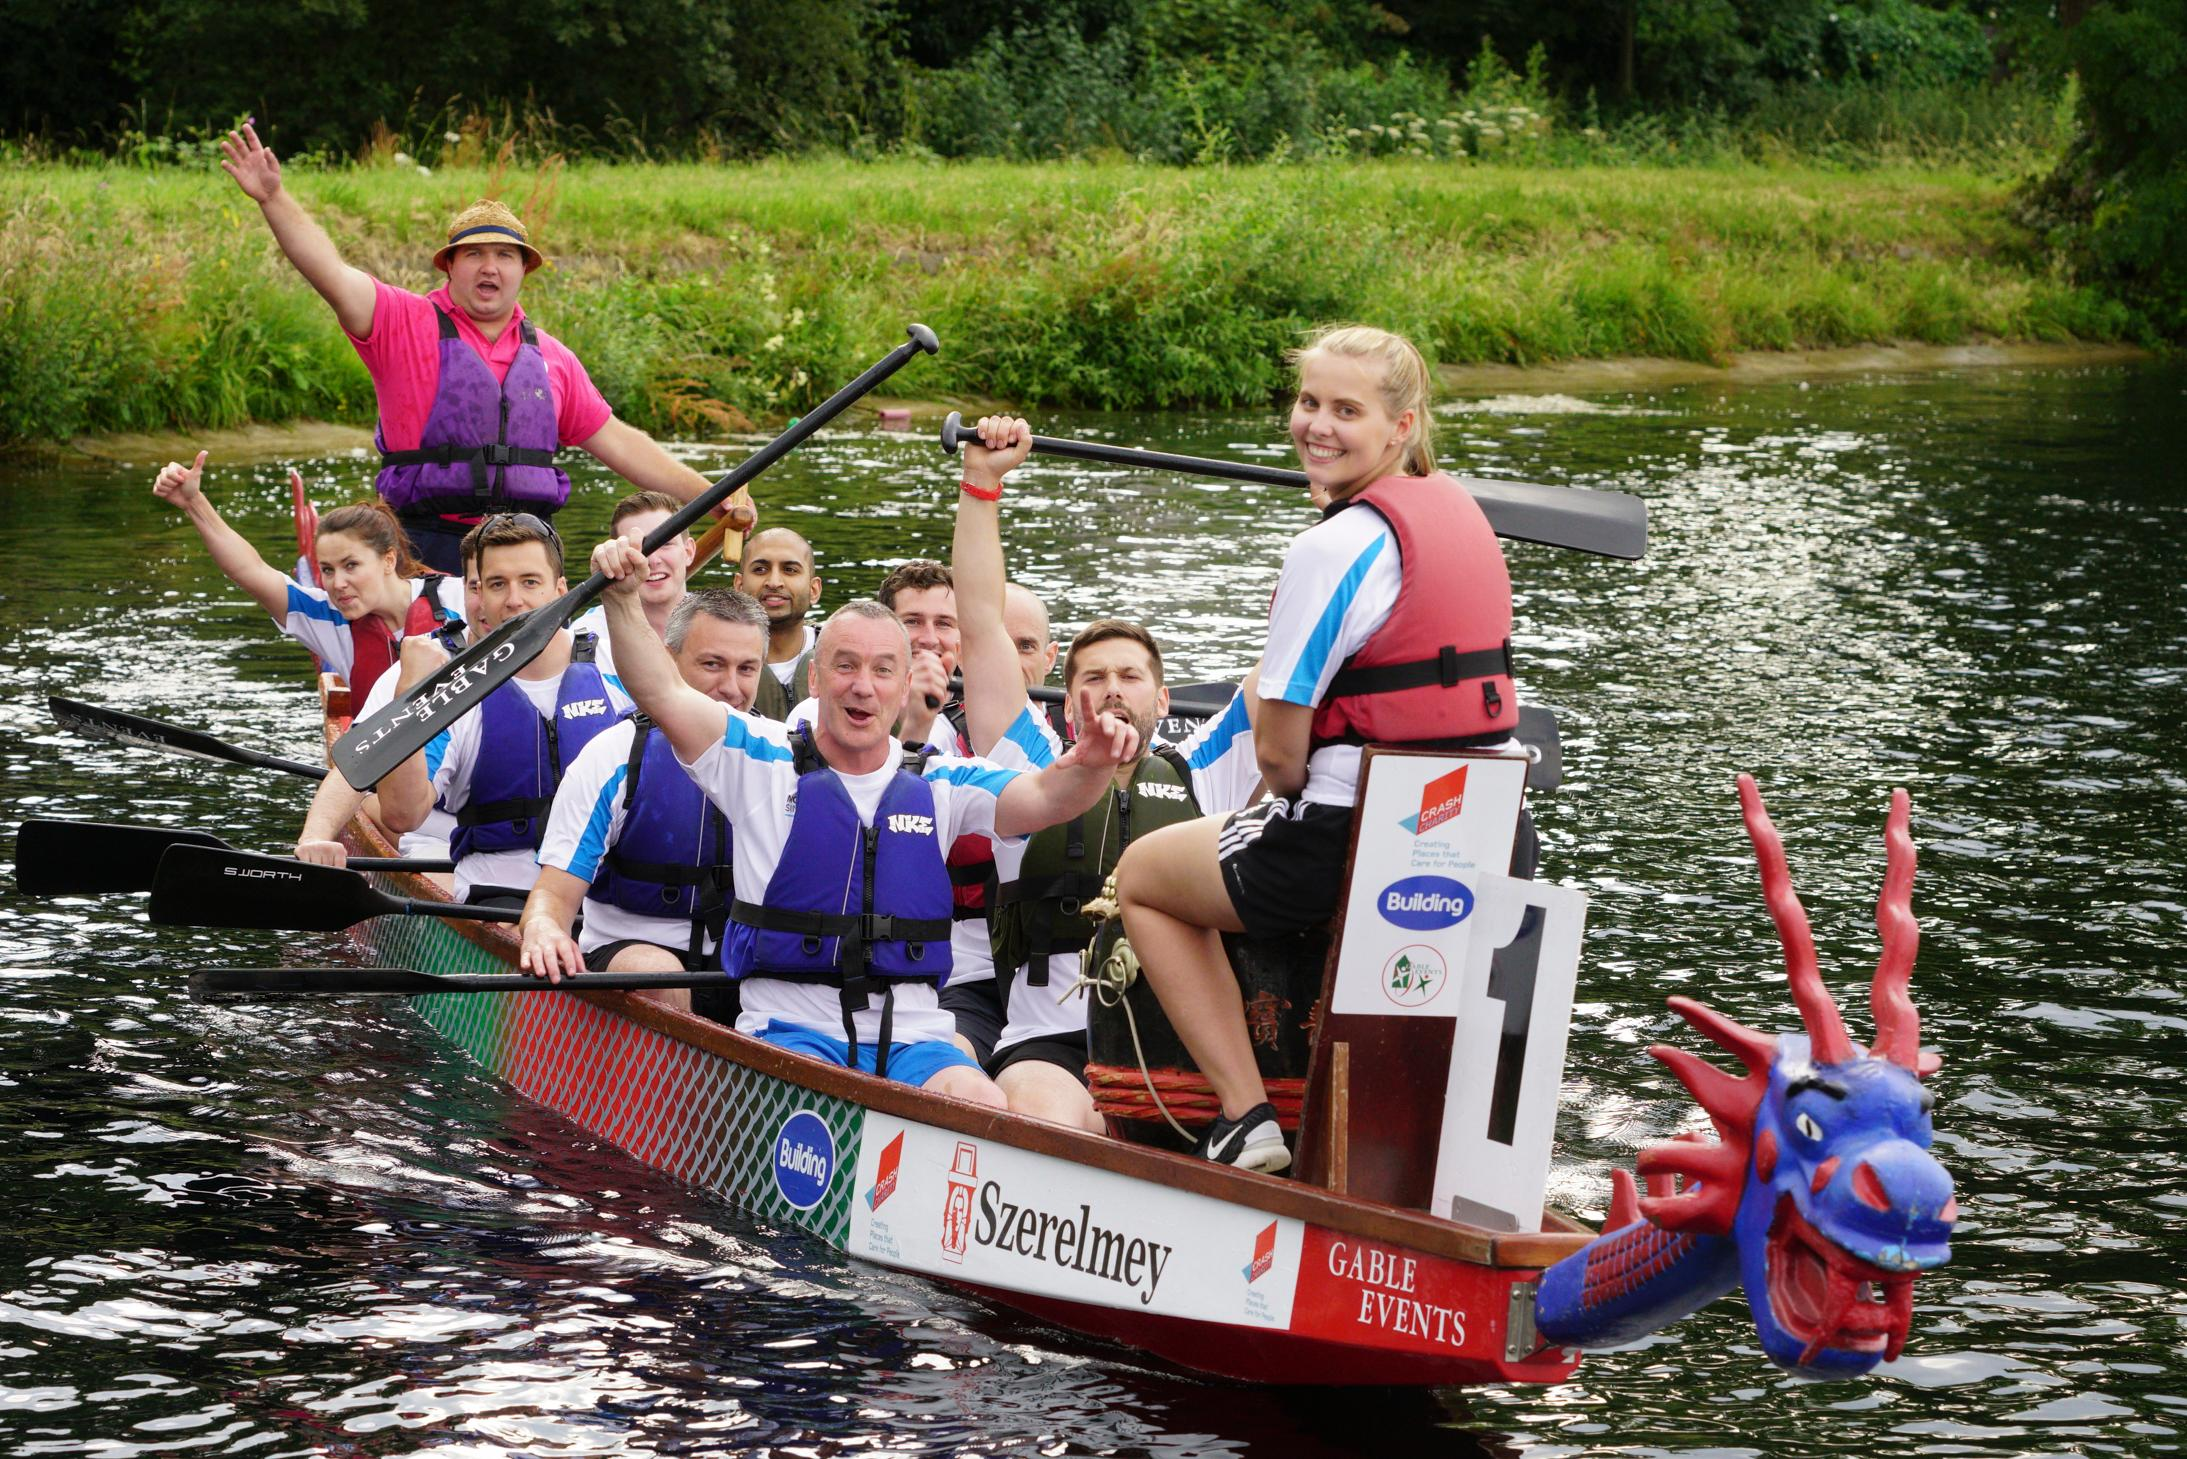 Dragon Boat Racing comes to Stanborough for WGC centenary